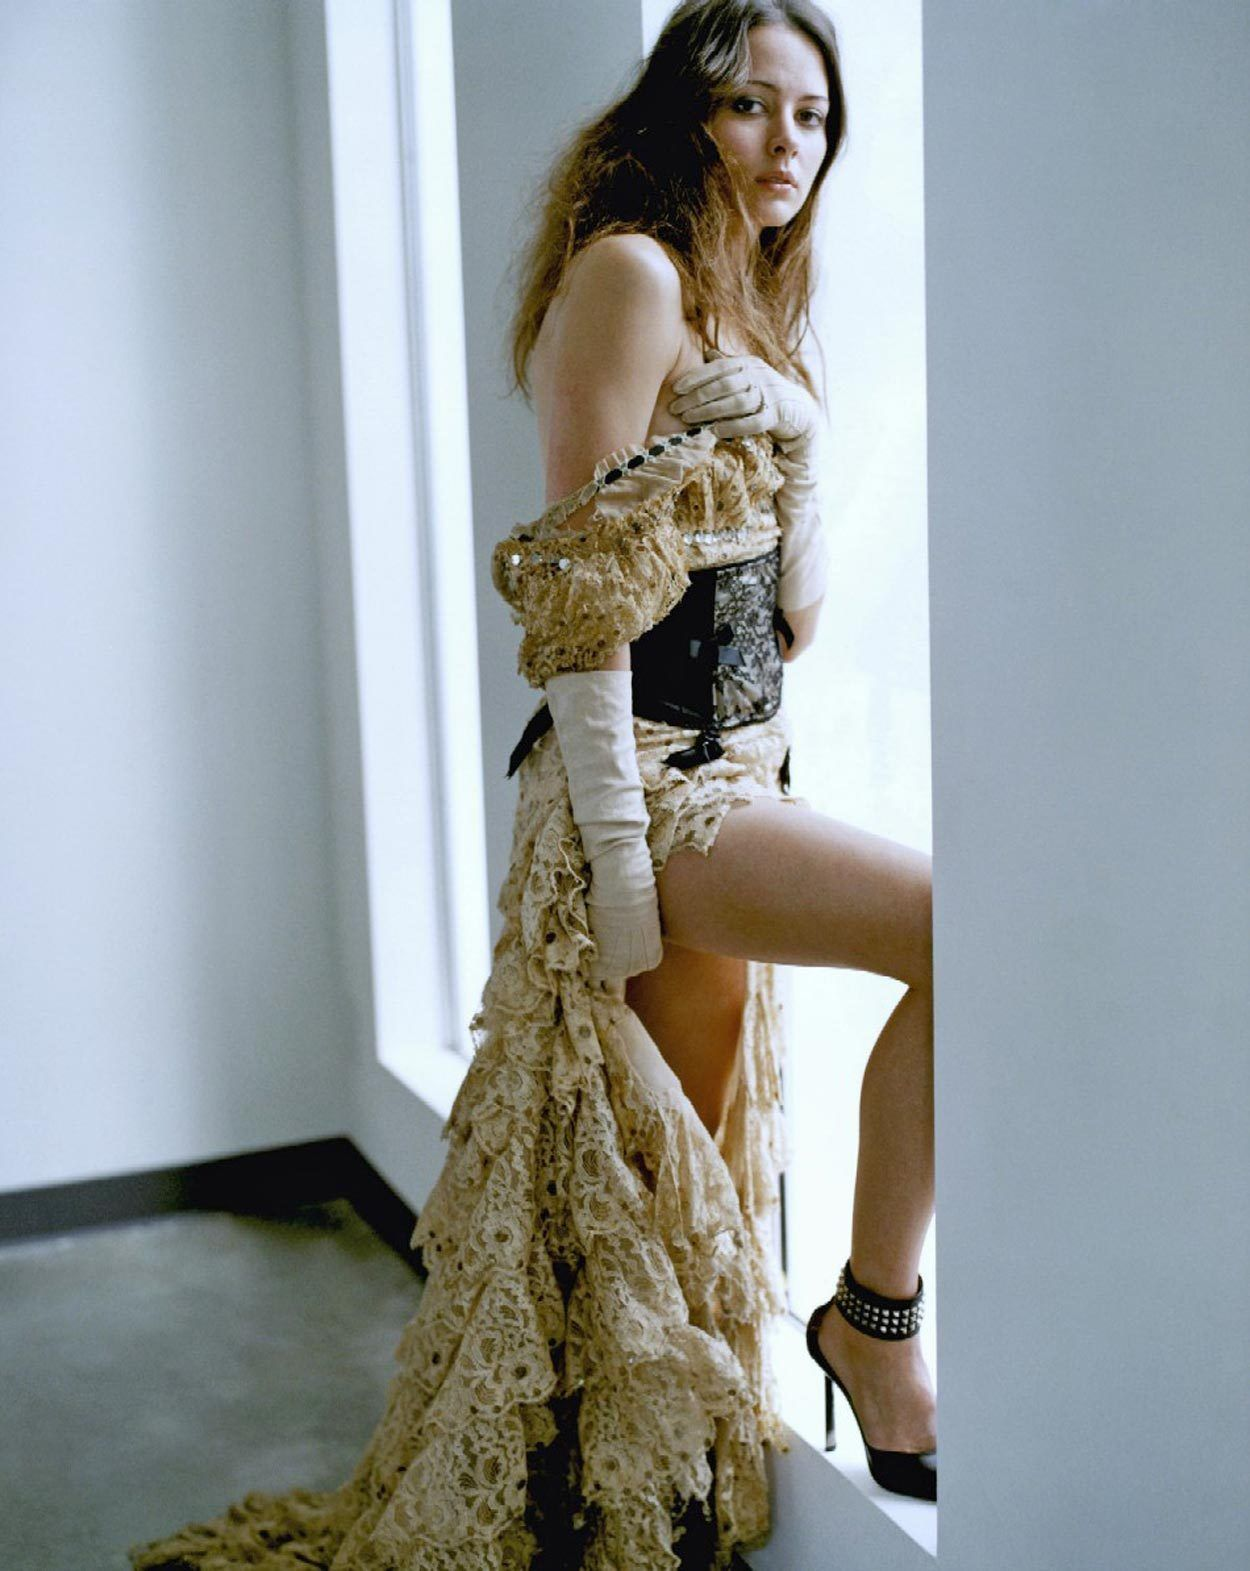 Amy Acker Hot Pics hottest woman 10/29/14 – amy acker (person of interest